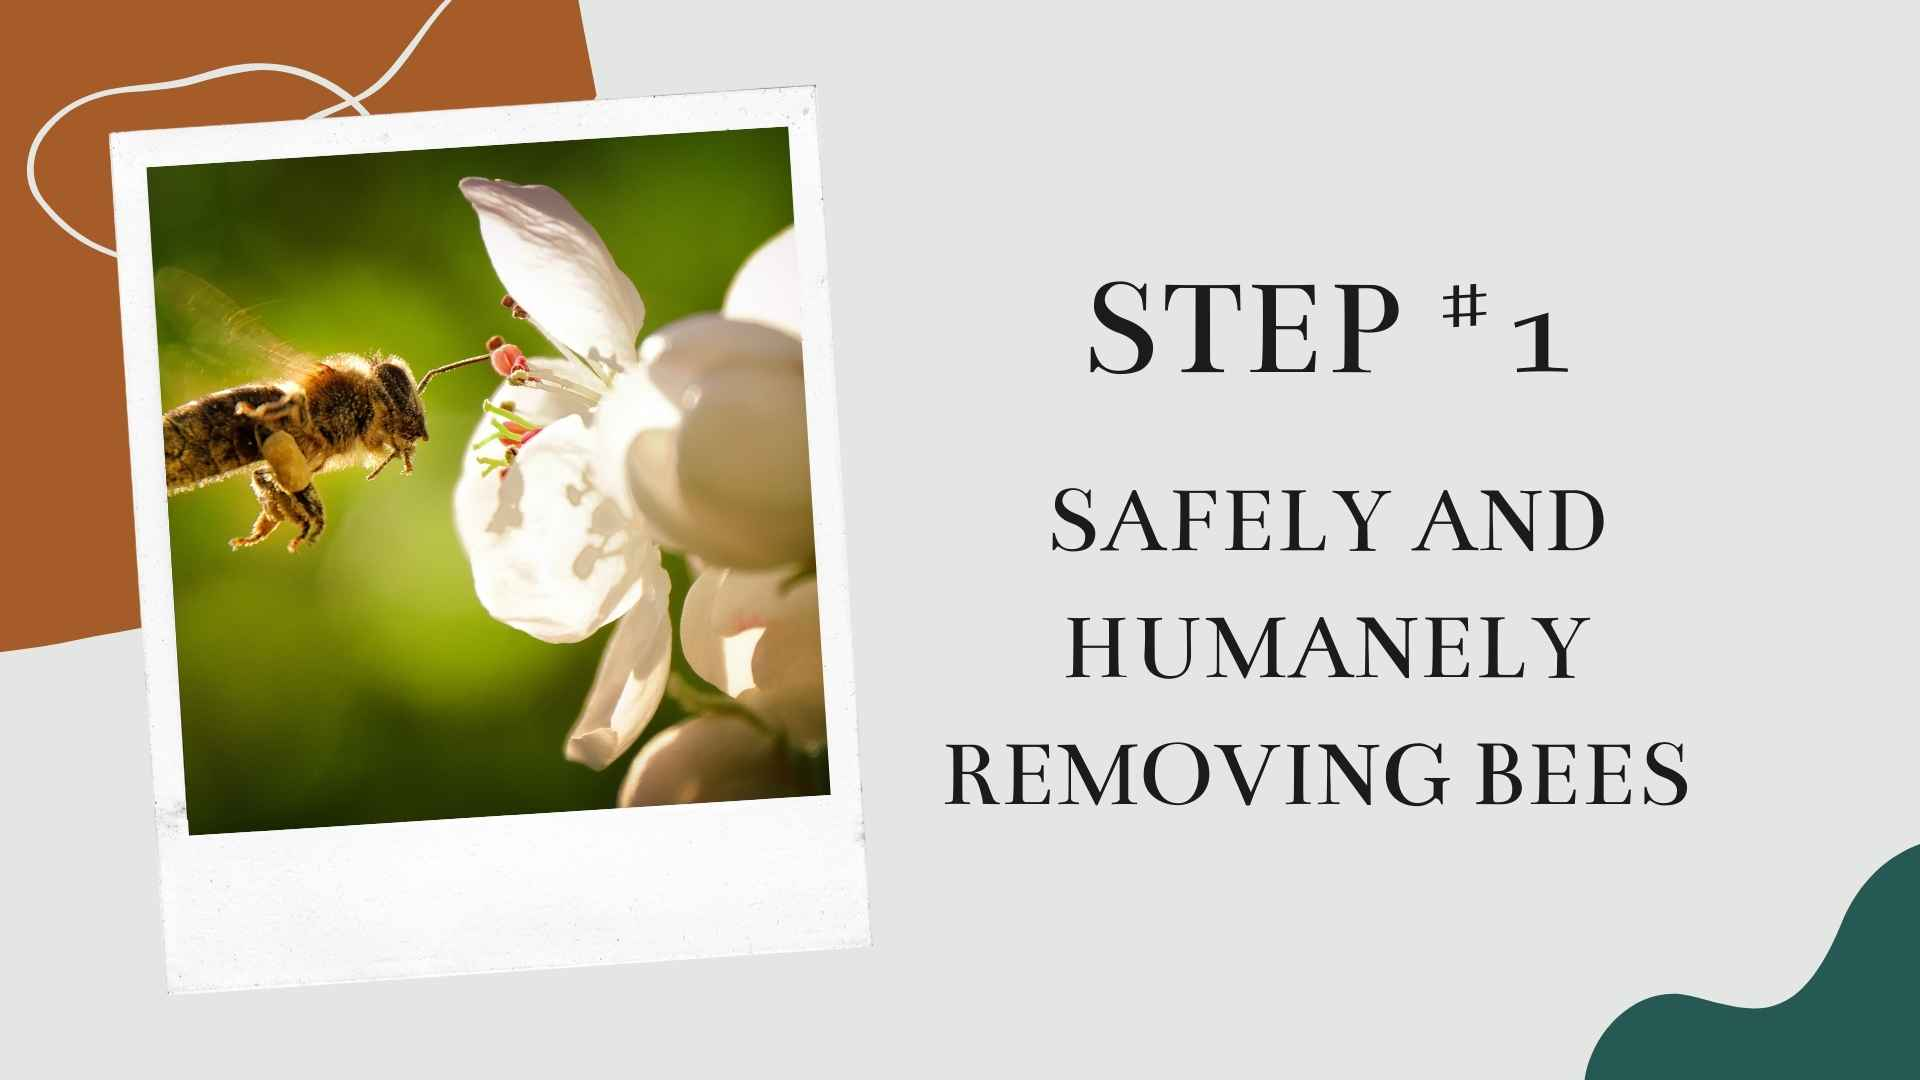 Step #1 Safely And Humanely Removing Bees